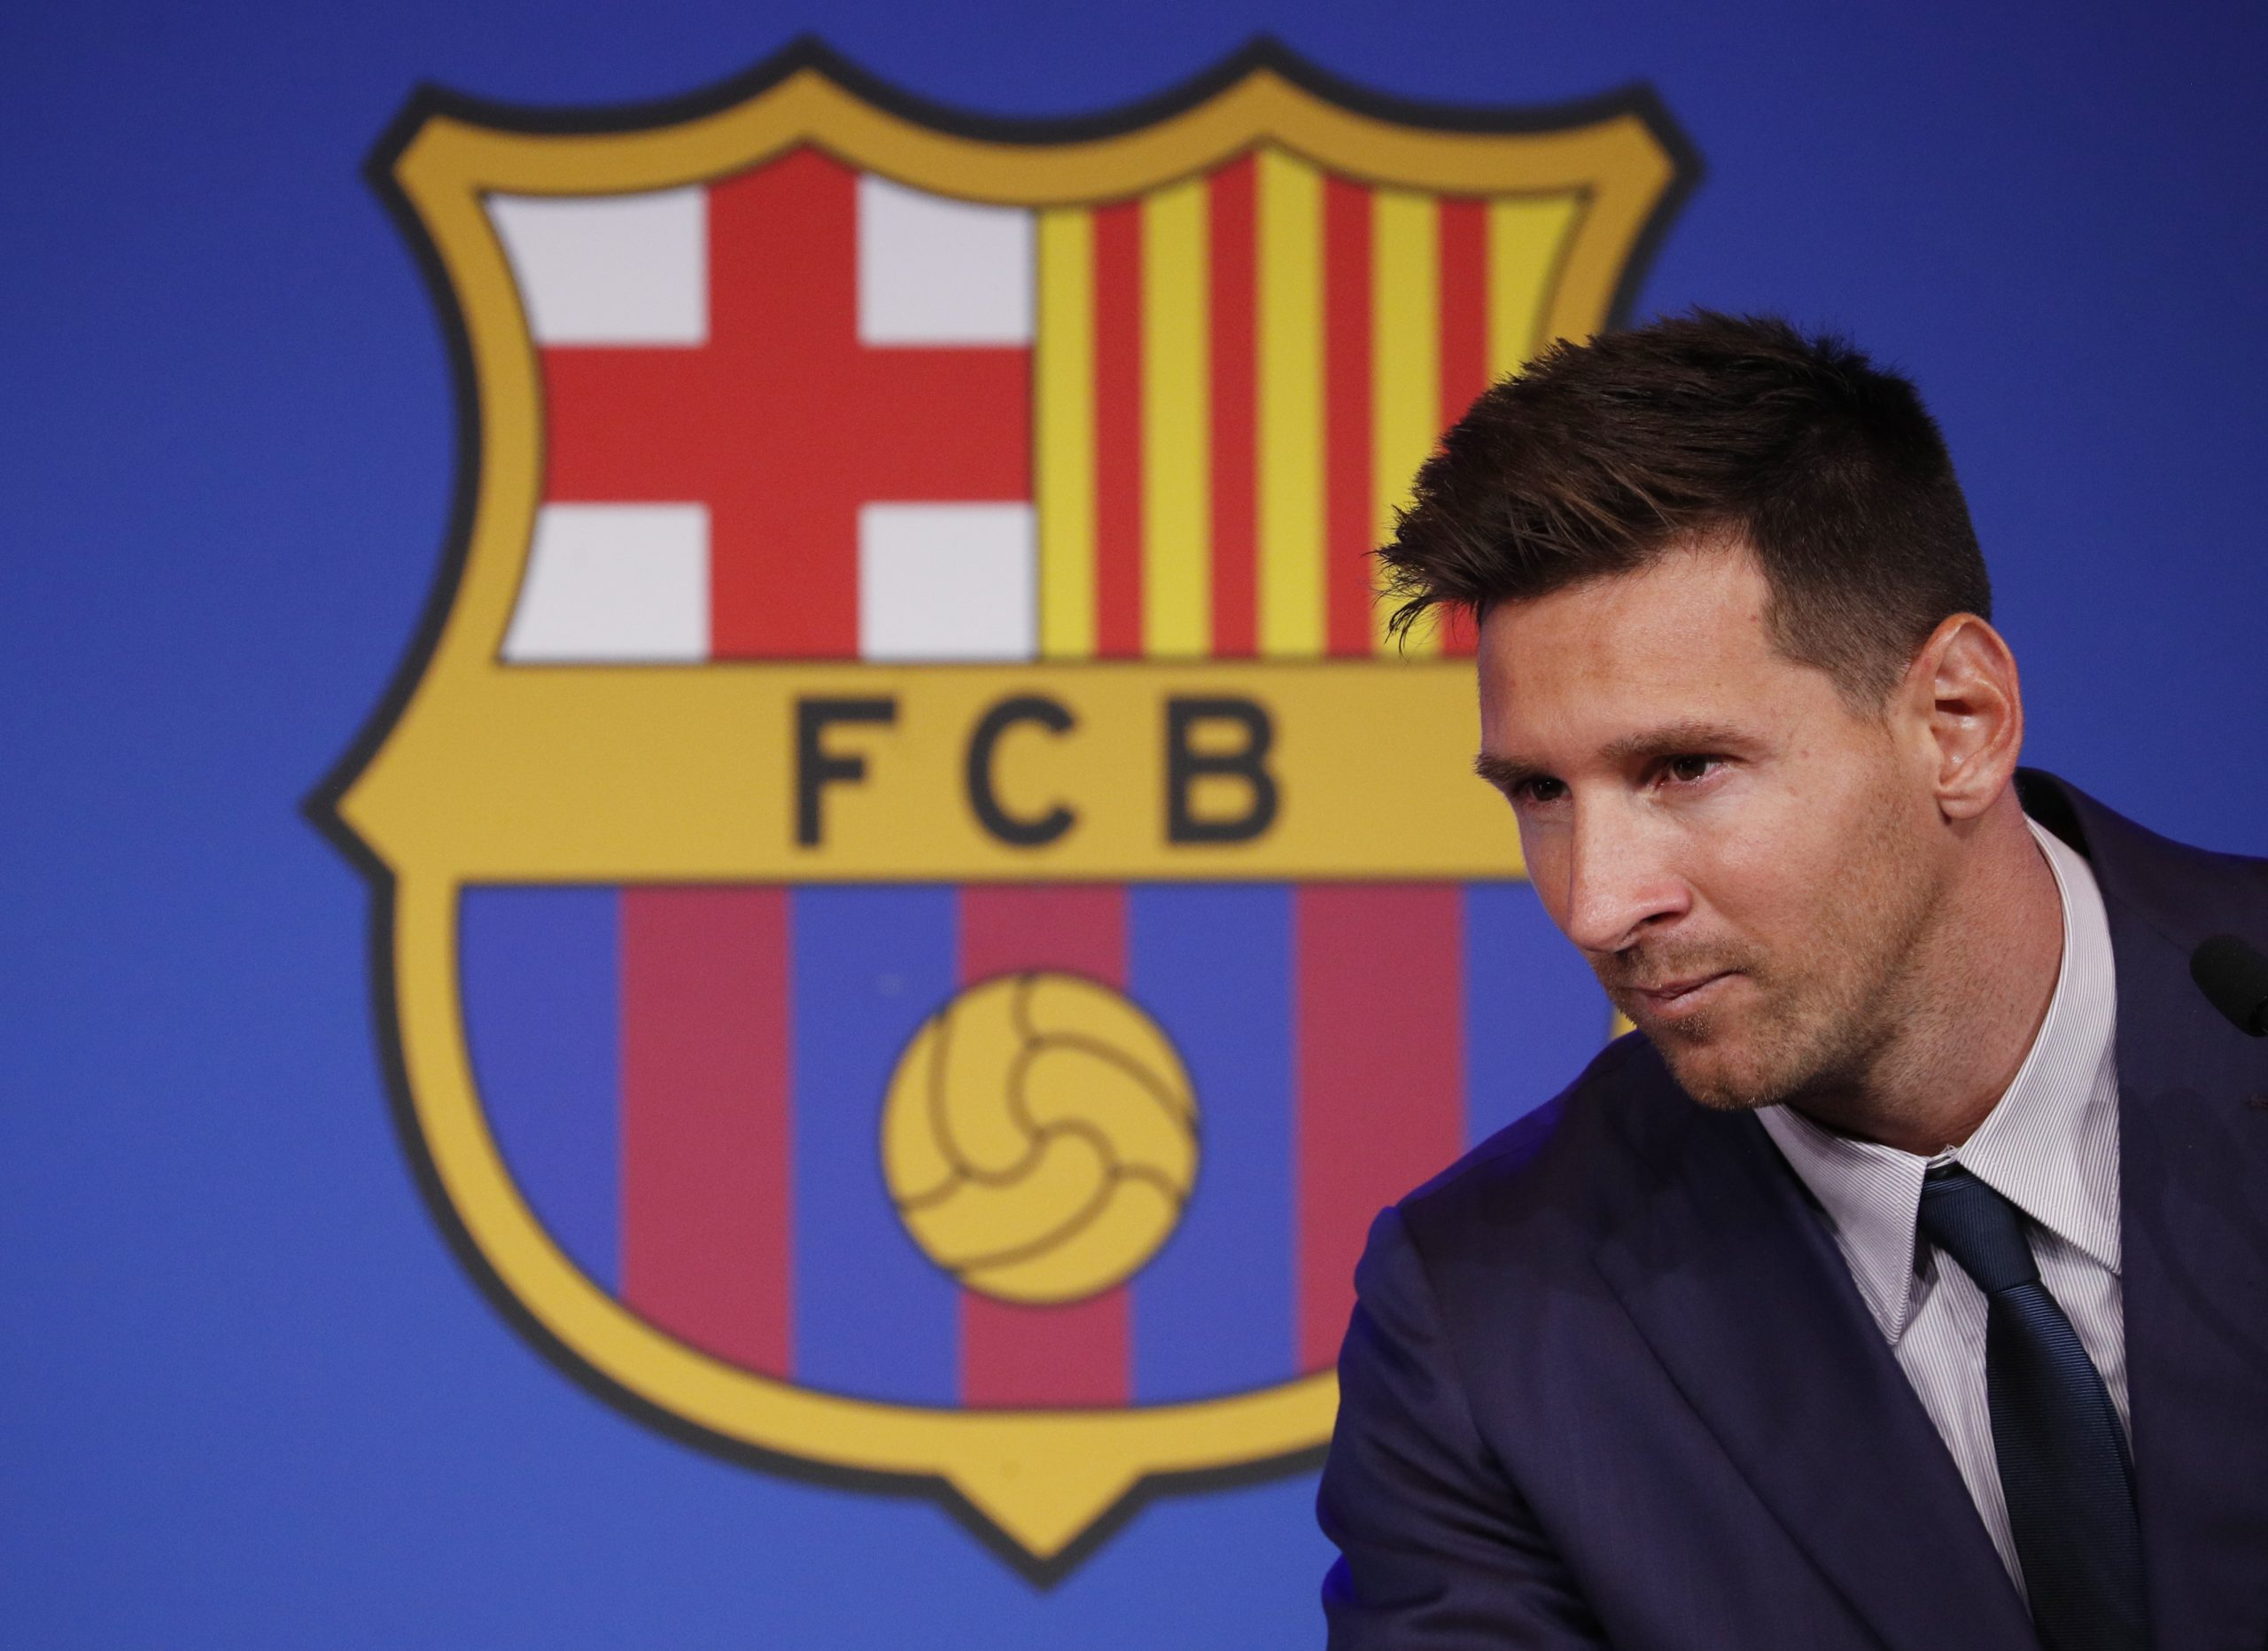 Barcelona member files complaints to block Messi move to PSG